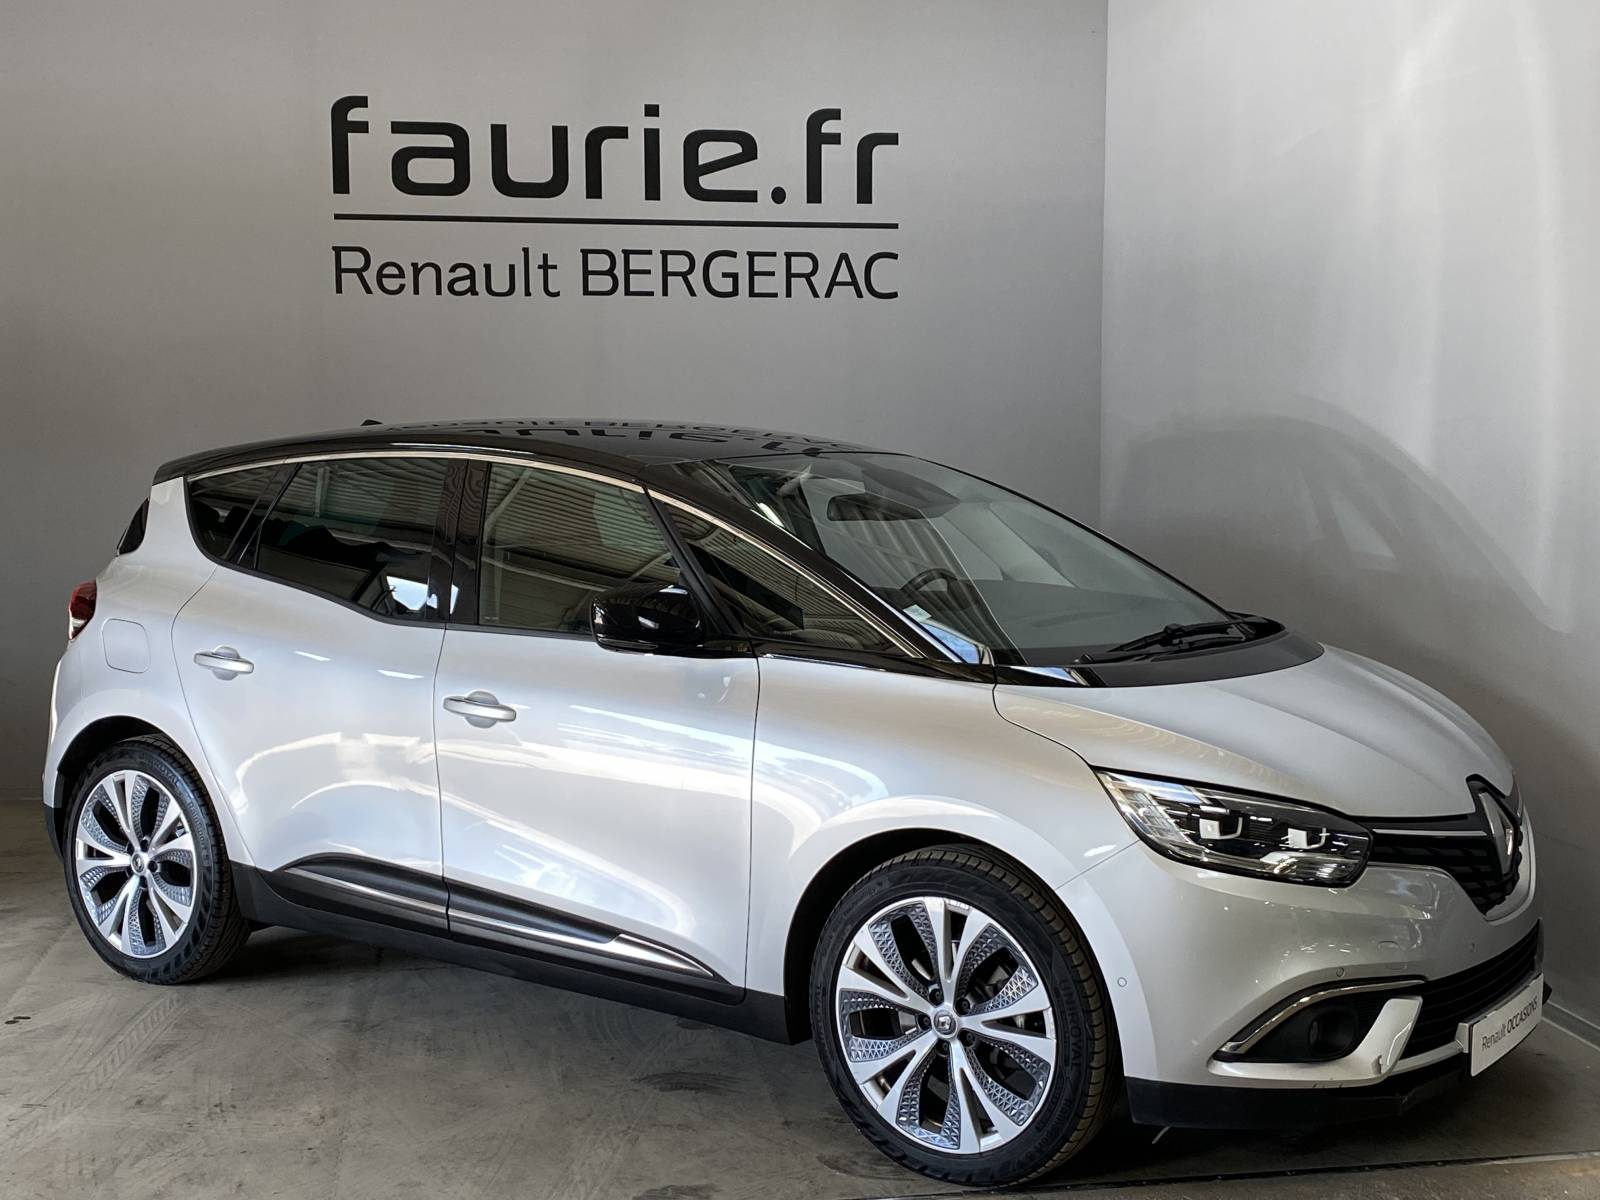 RENAULT Scenic dCi 130 Energy - véhicule d'occasion - Site Internet Faurie - Renault - Faurie Auto Bergerac - 24100 - Bergerac - 3